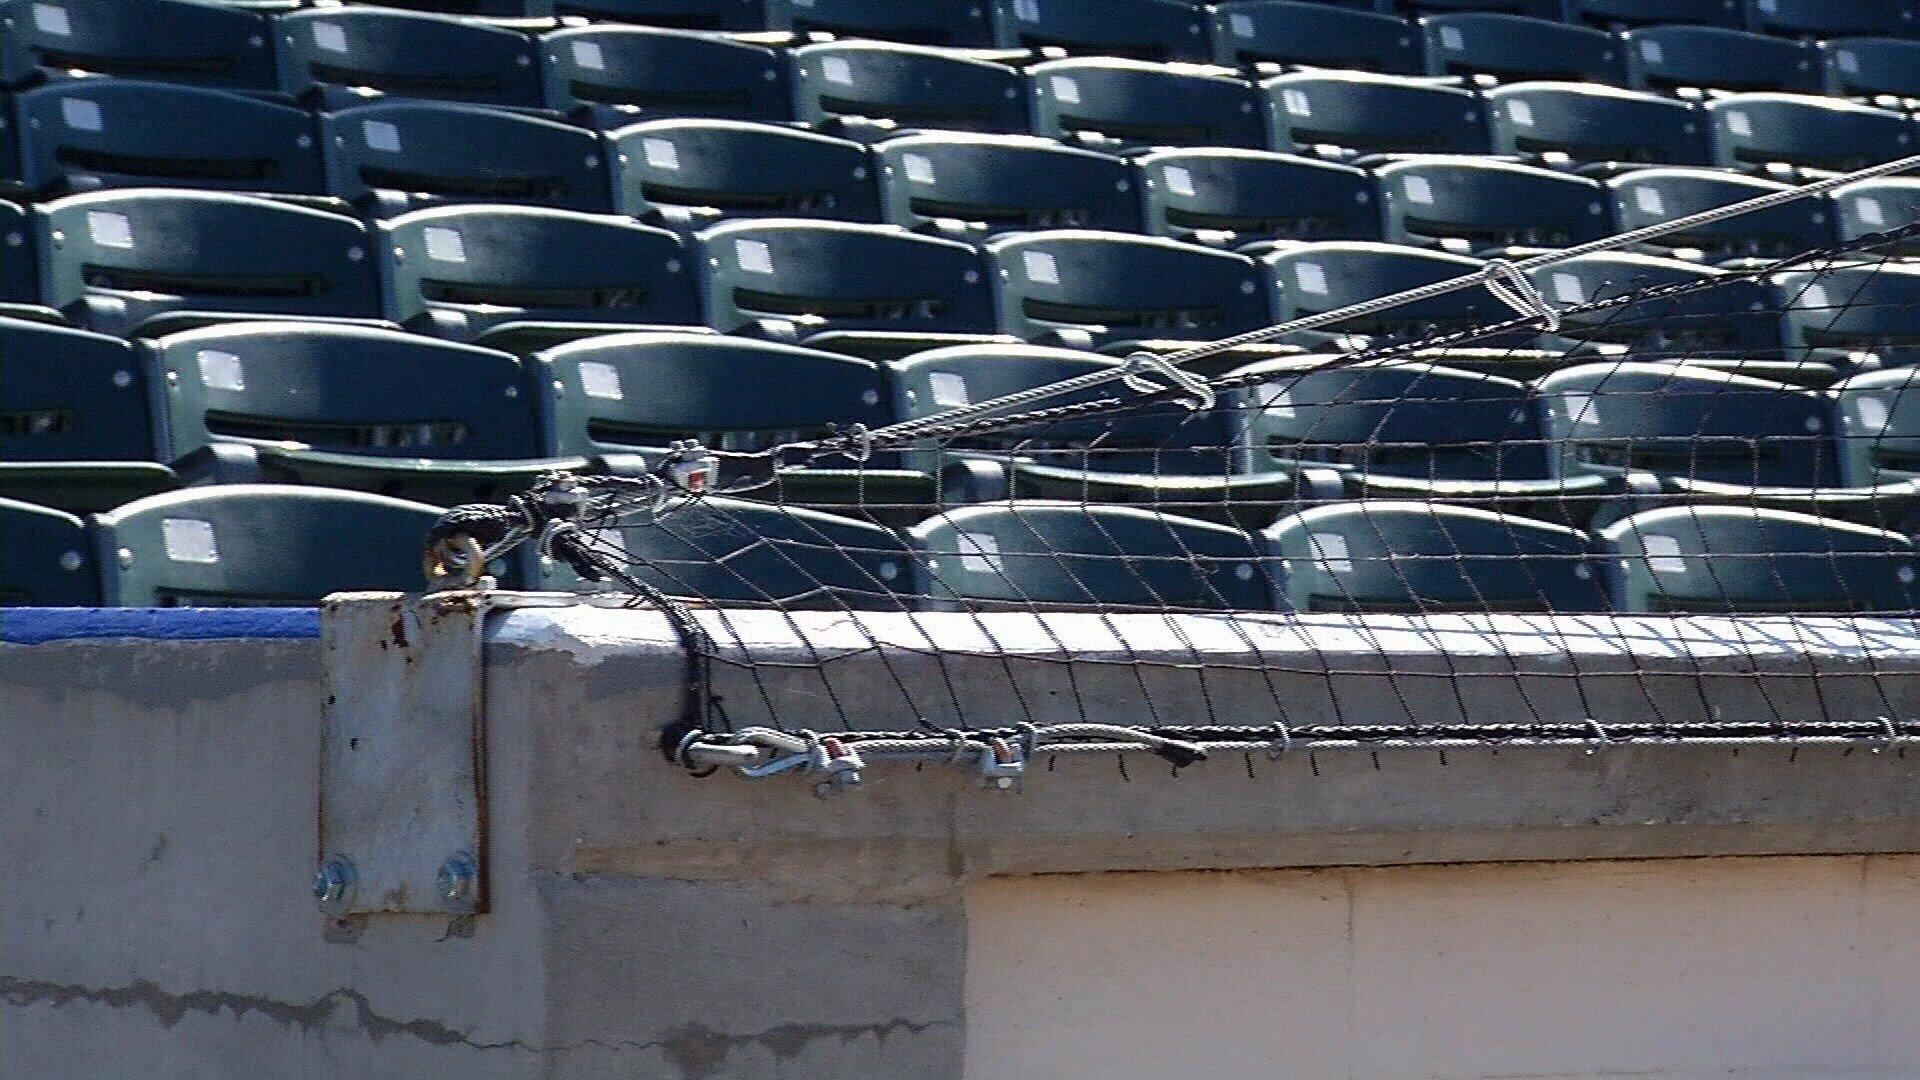 Whataburger field has extended its safety nets to help protect Hooks fans from foul balls and other objects that might fly into the stands.